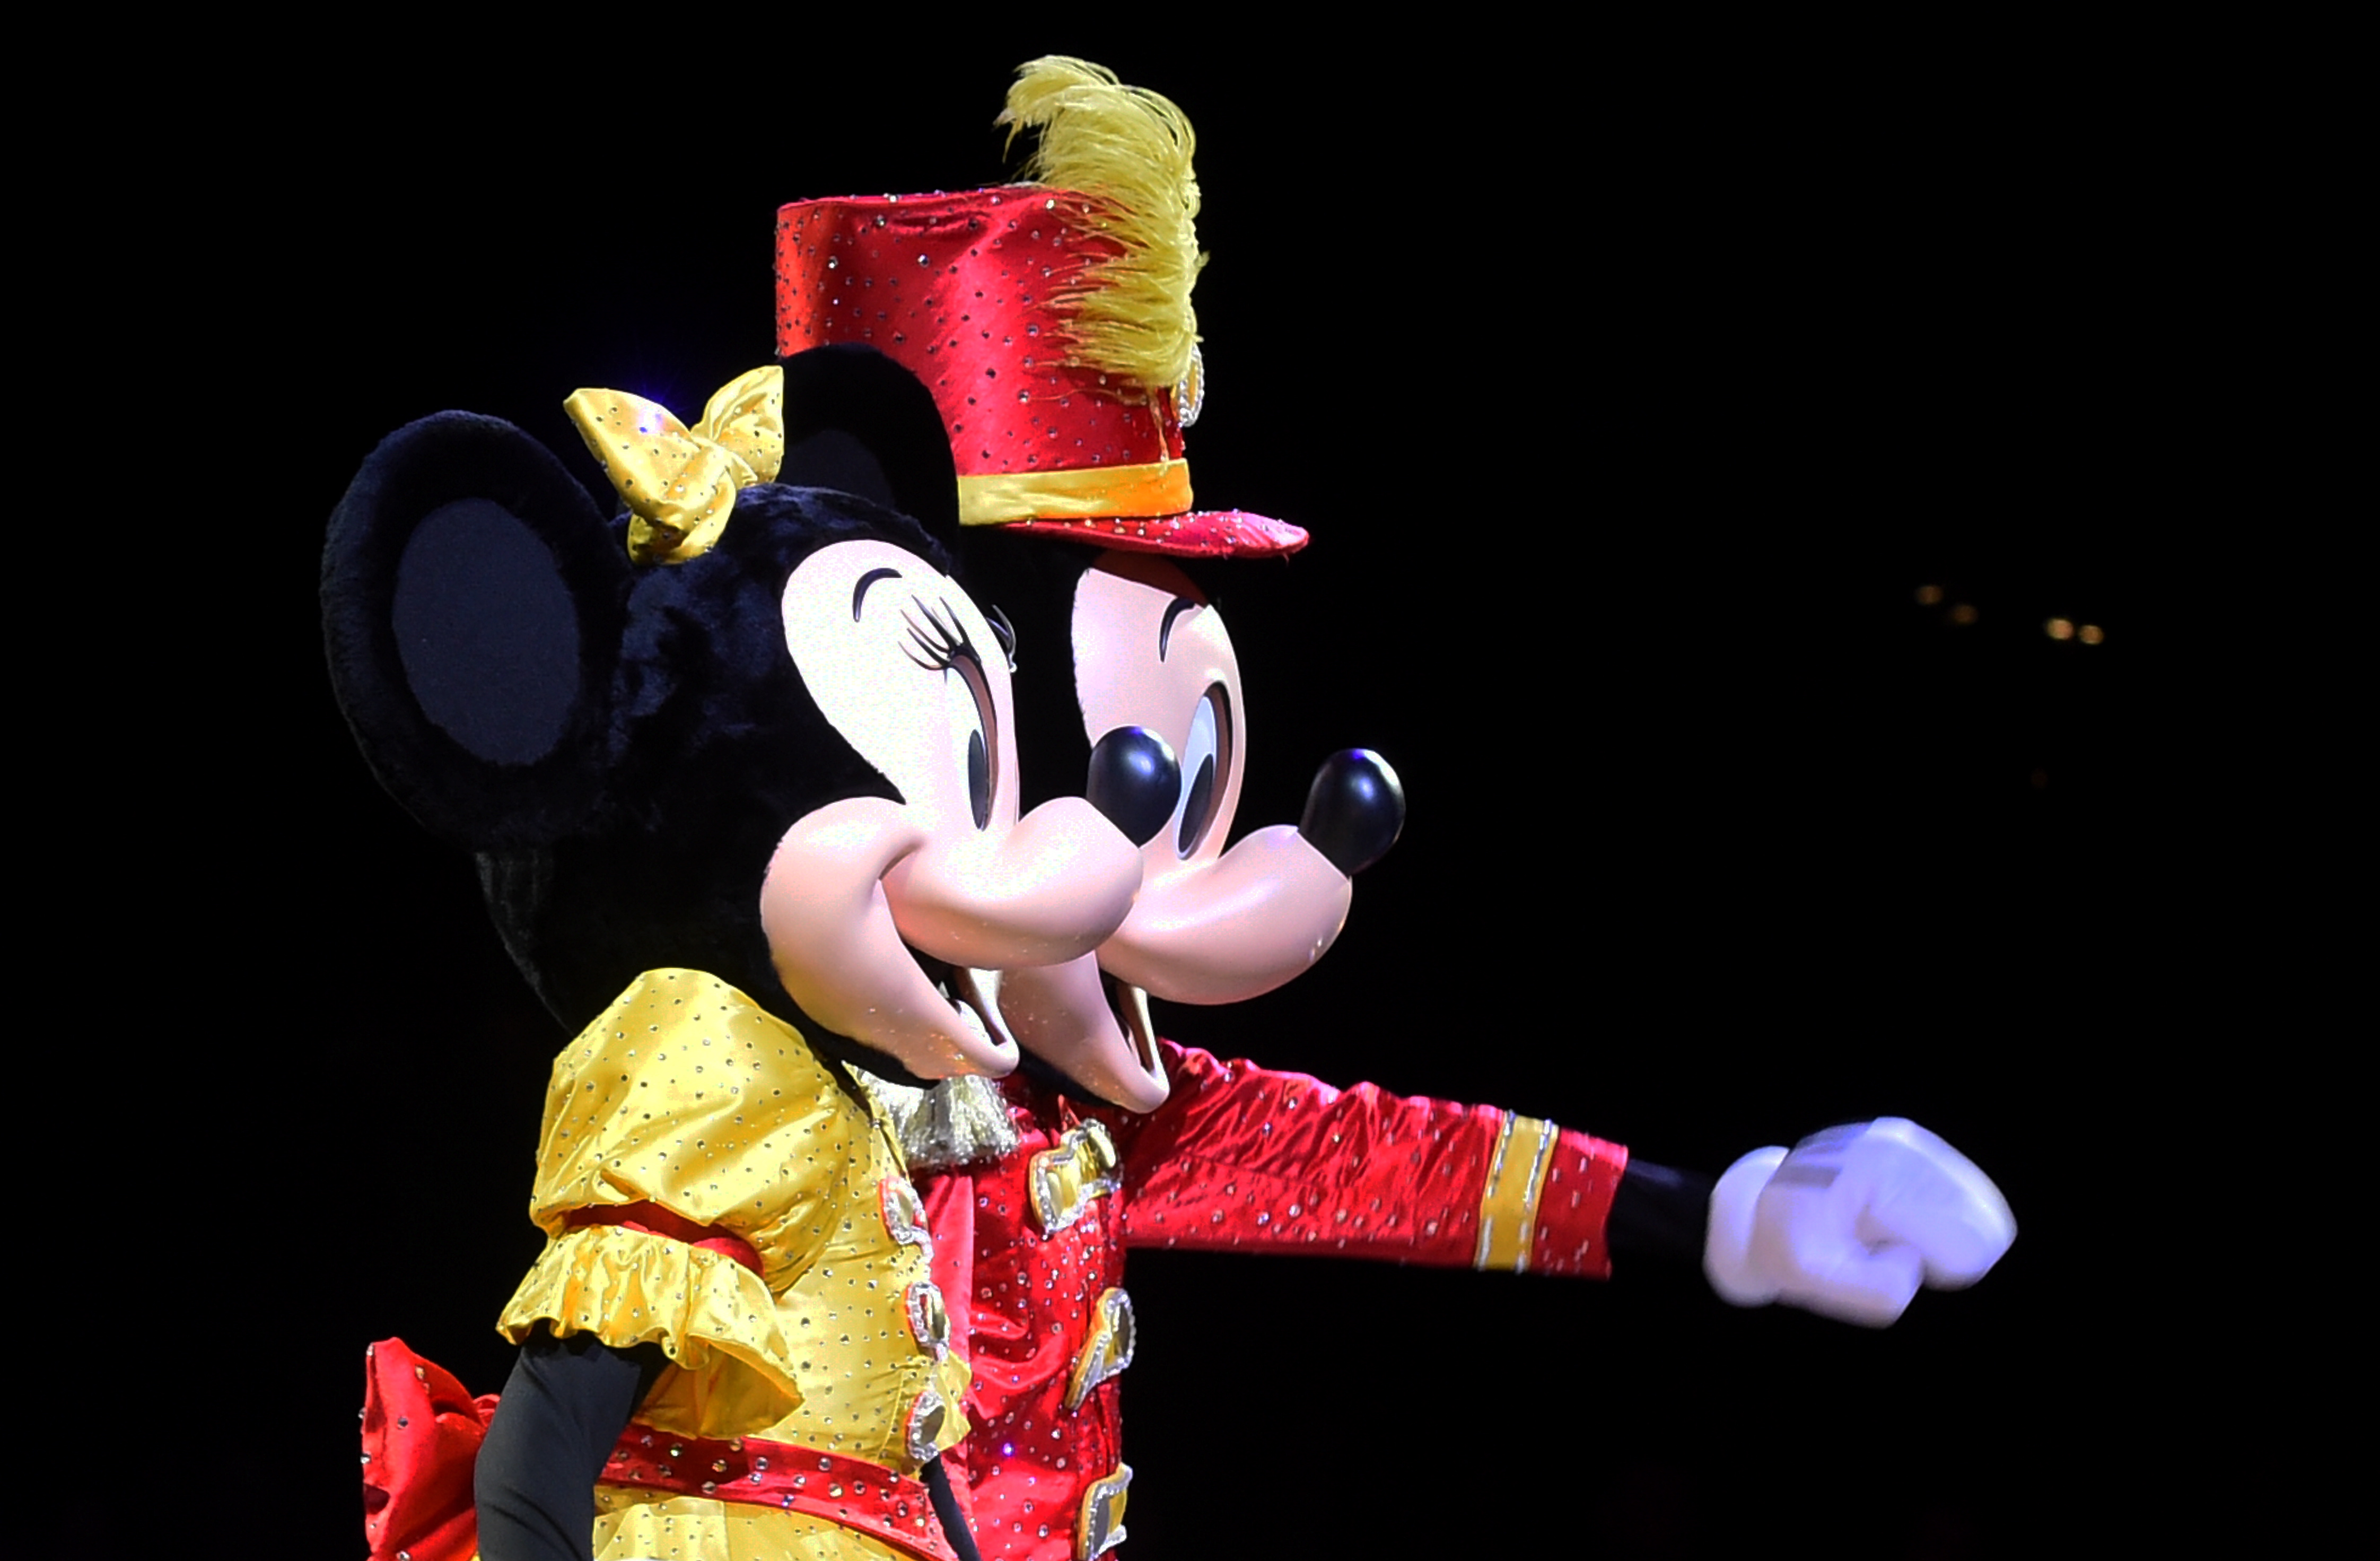 CR0014989 Disney On Ice Celebrates 100 Years of Magic at PJ Live, Dyce, Aberdeen.  Picture by Jim Irvine  31-10-19